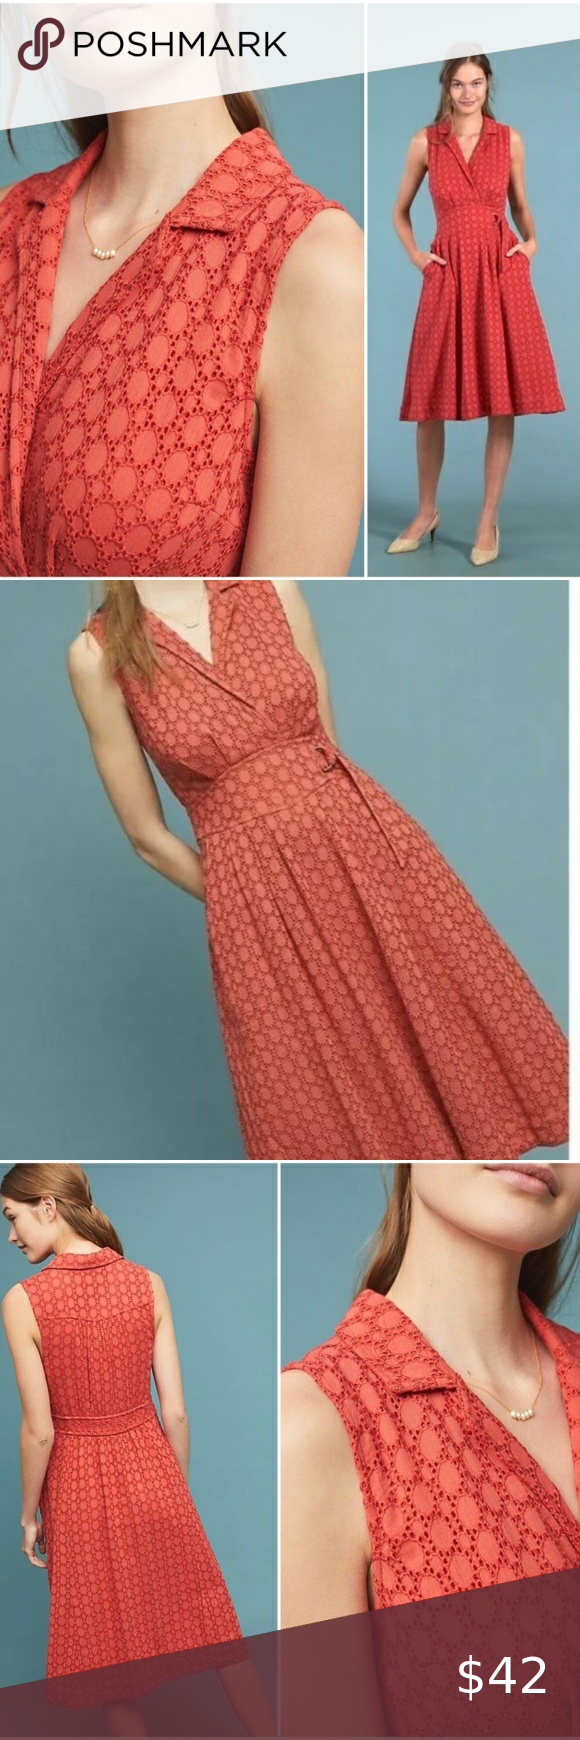 Anthropologie Coral Red Eyelet Retro Fit Dress Anthropologie Sleeveless Collared Dress Coral Red Eye Sleeveless Collared Dress Fit And Flare Dress Fitted Dress